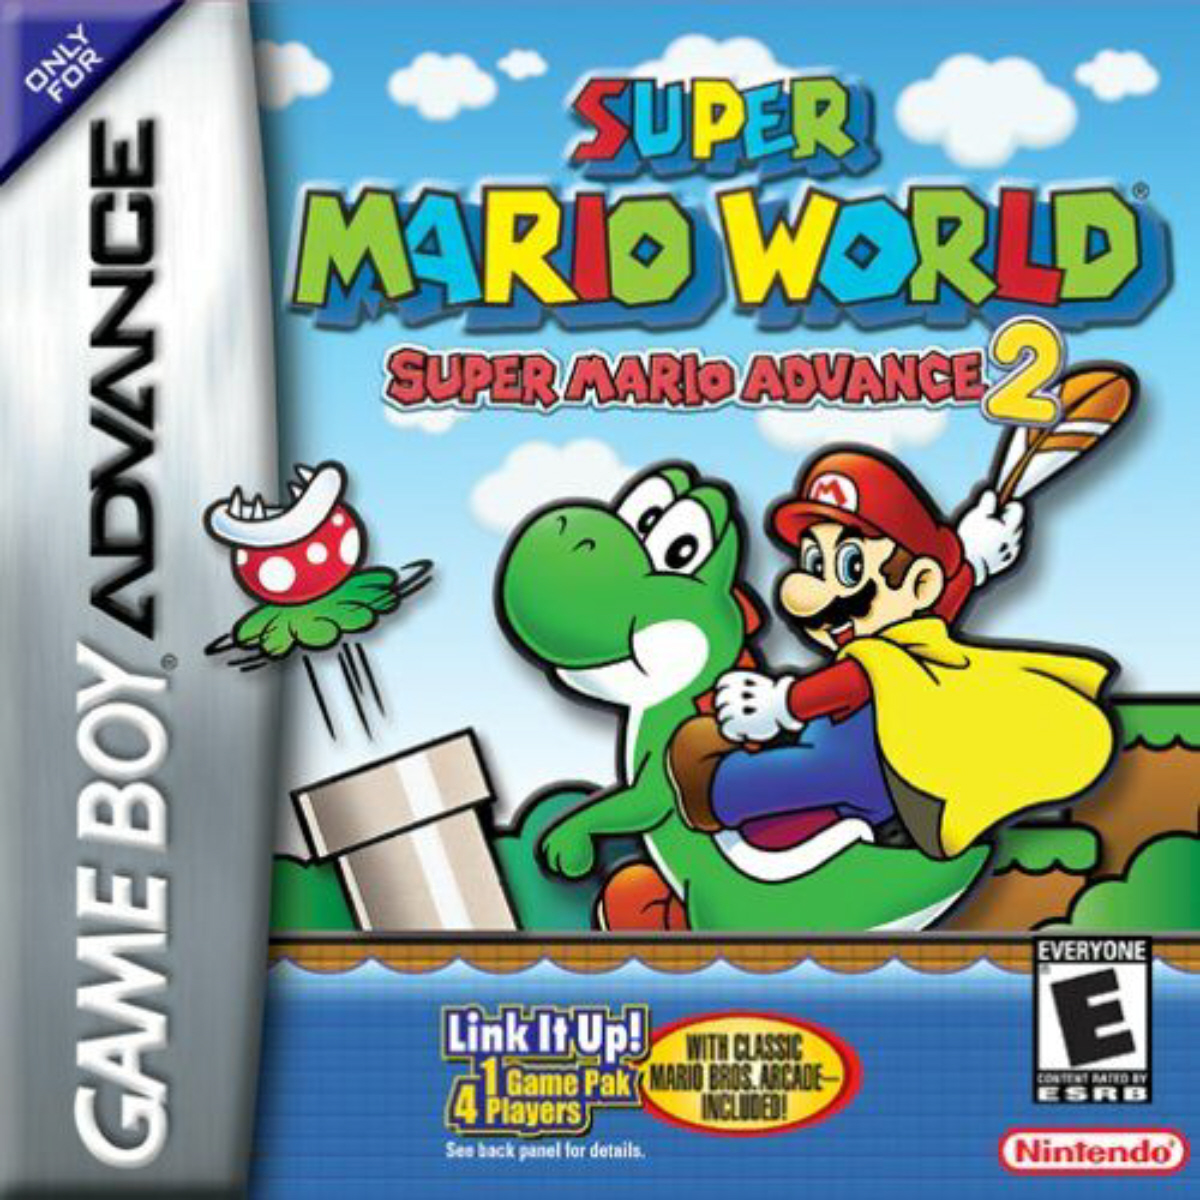 Home supermario games supermario wallpapers - Super Mario World Advance Box Art For The Cover Gba